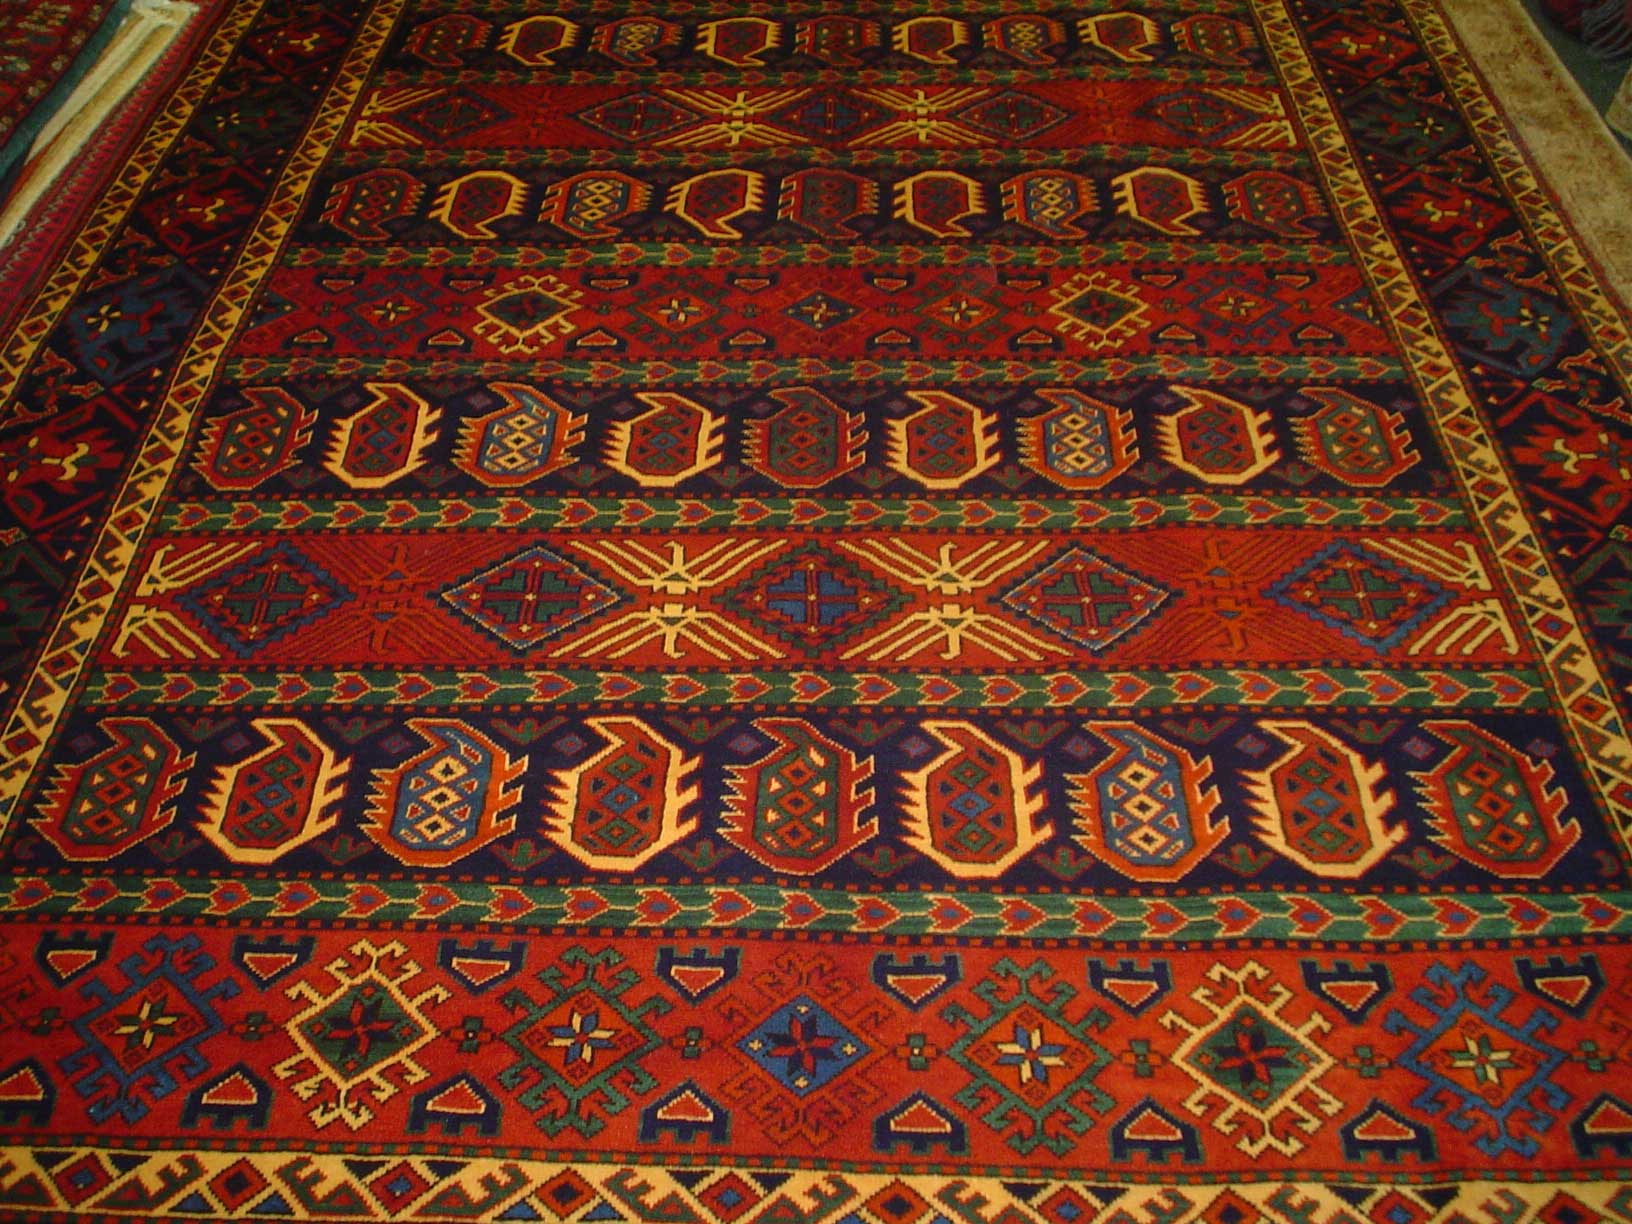 7 x 10 Gorgeous Afghan rug with geometric boteh design. Multicolored tribal rug woven with lustrous wool.